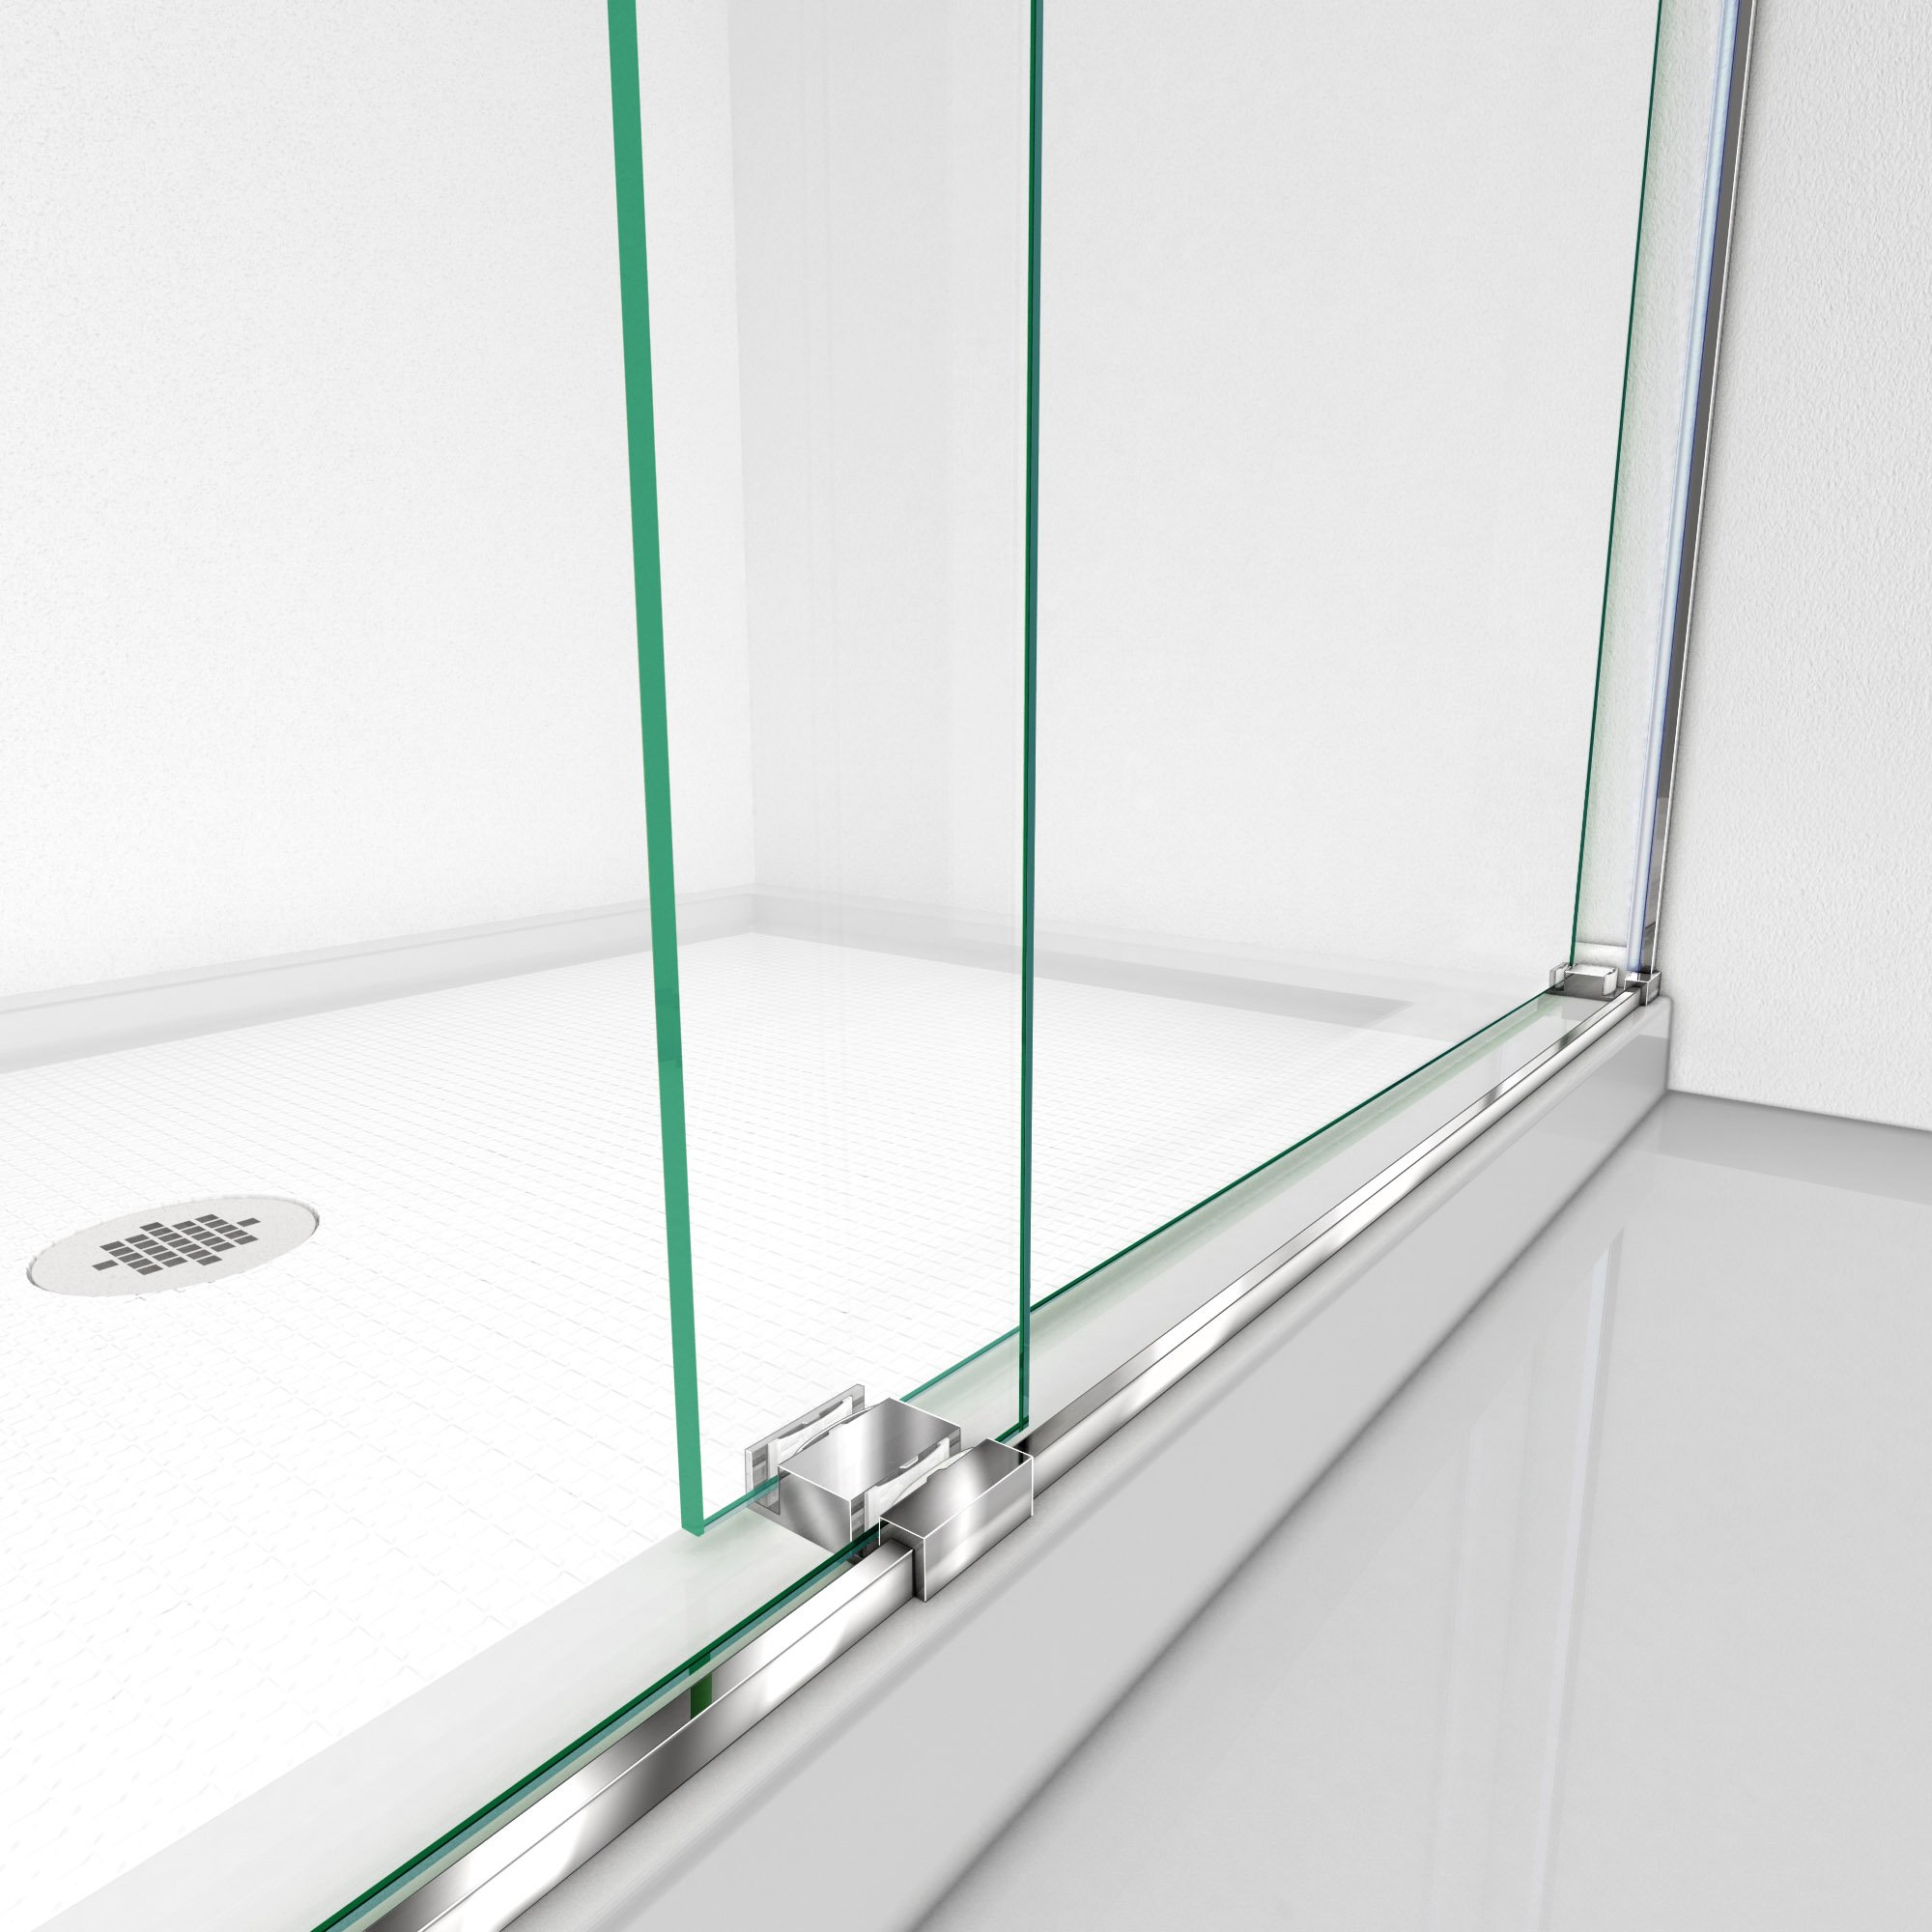 DreamLine SHDR-6360760-04  Essence 56 to 60 in. Frameless Bypass Shower Door in Brushed Nickel Finish by DreamLine (Image #5)